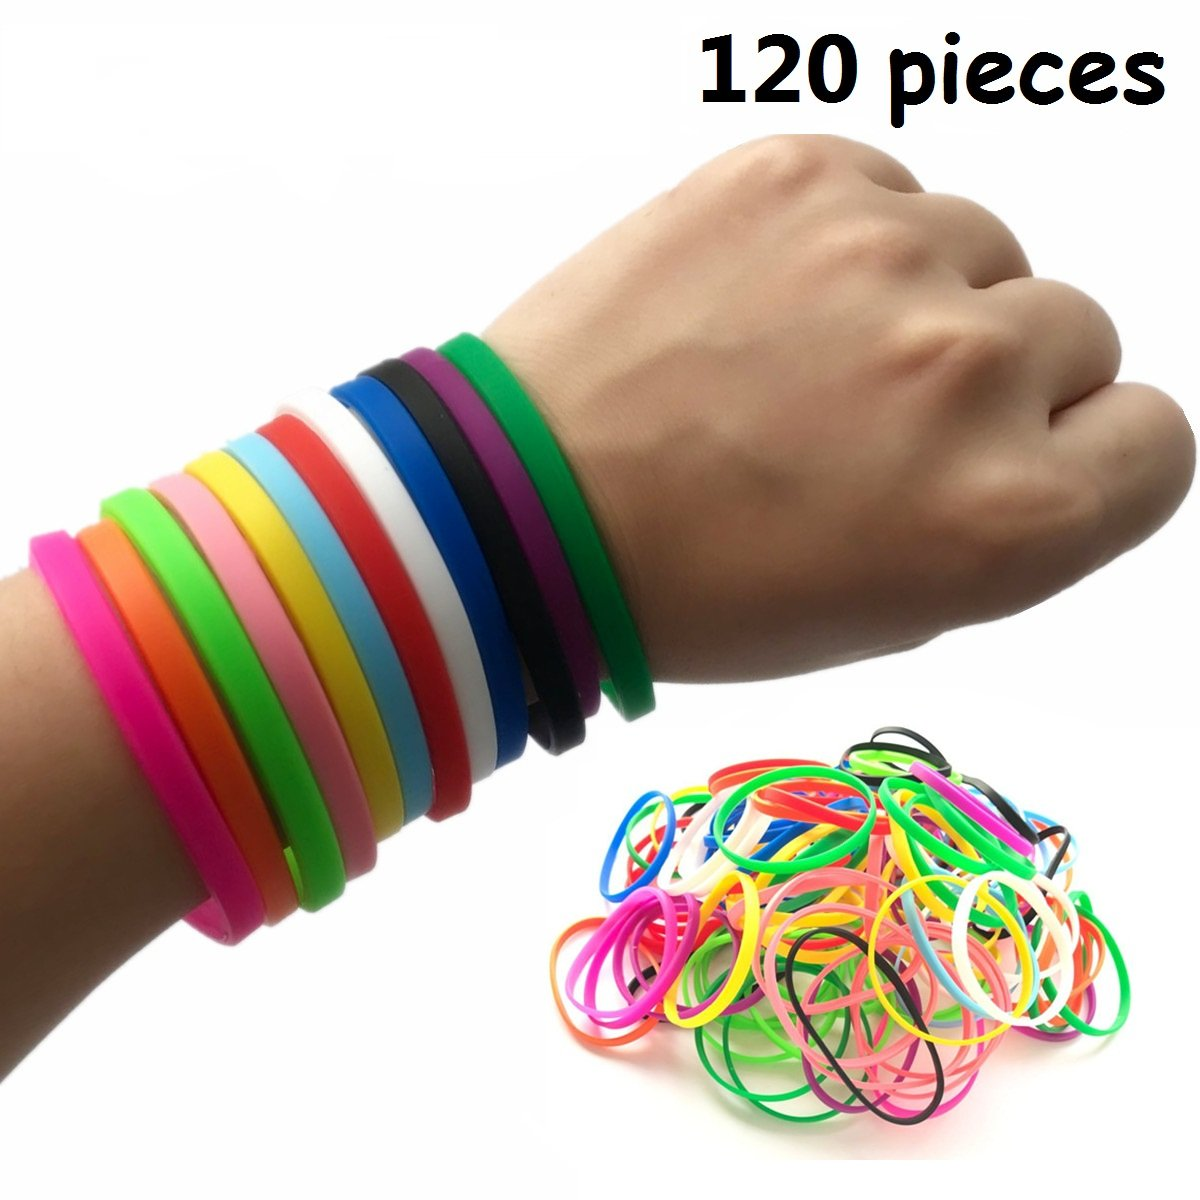 M.best 120 Pieces Neon Jelly Stretch Elastic Silicone Wristbands Bracelets for Party Favors Supplies - Assorted Colors